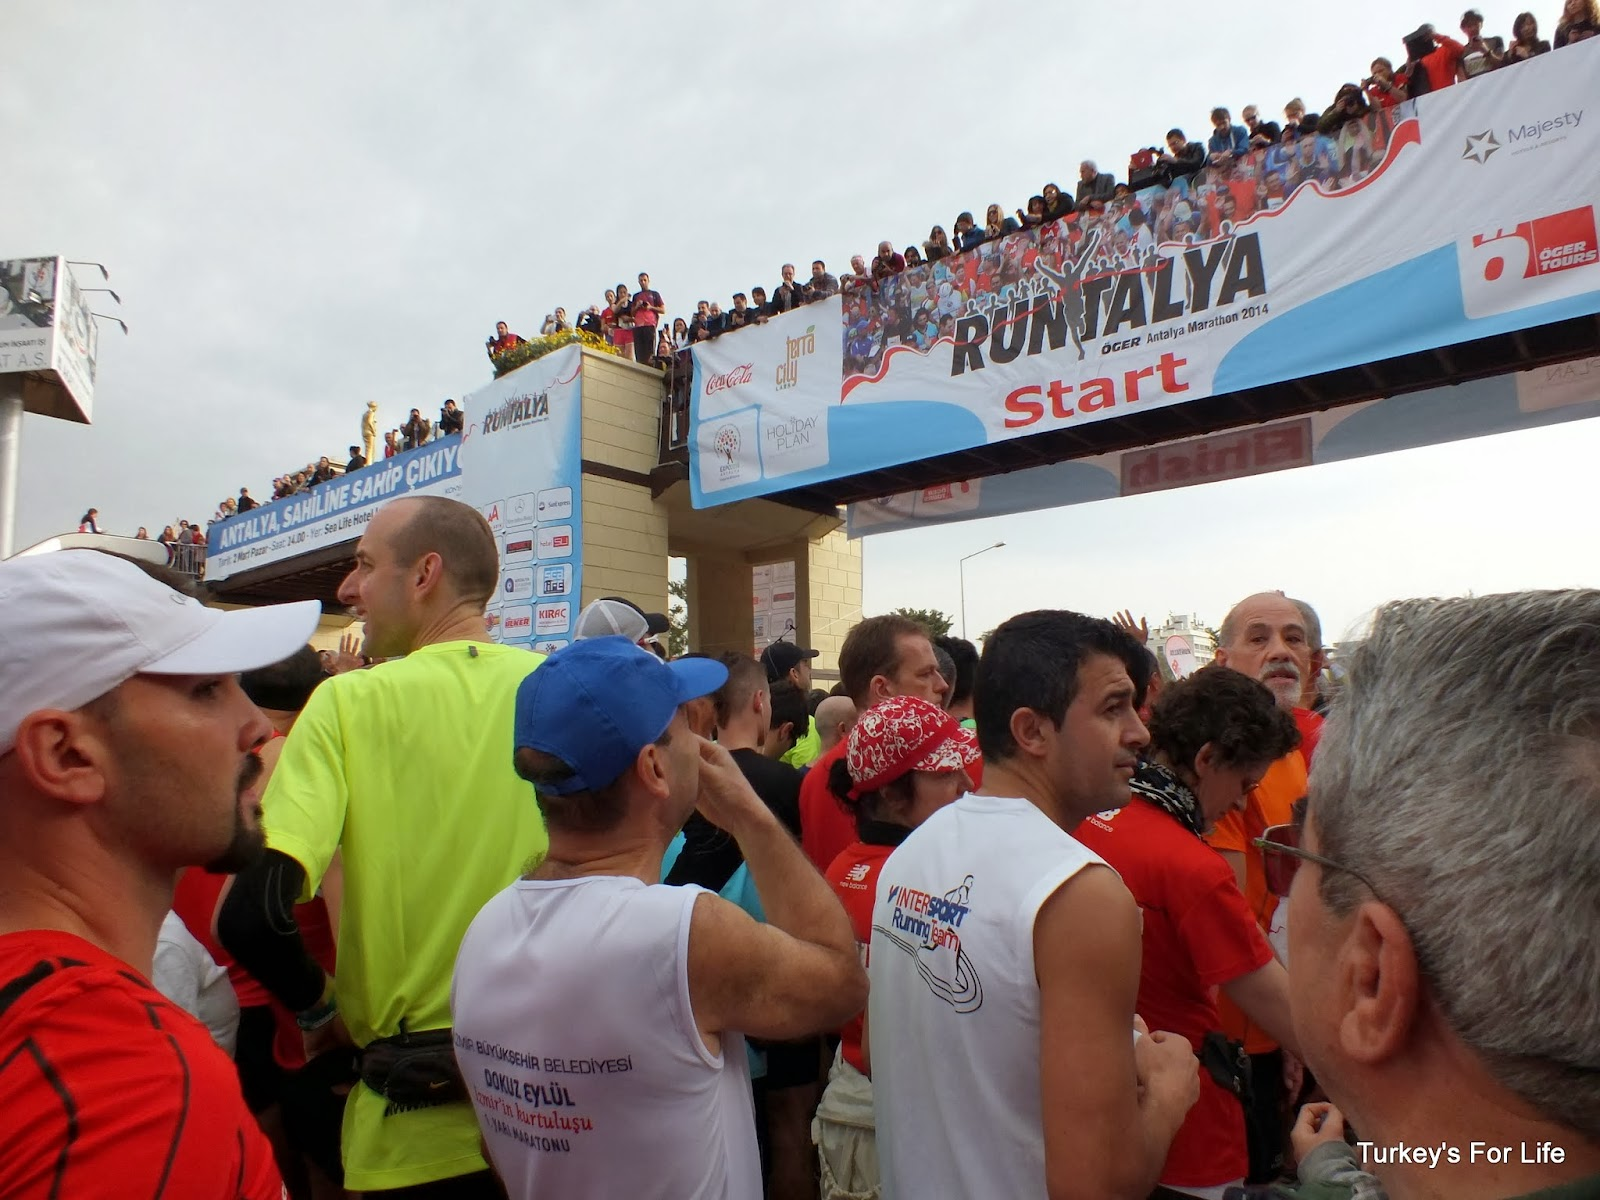 Runtalya 2014 - Start Line, Antalya, Turkey